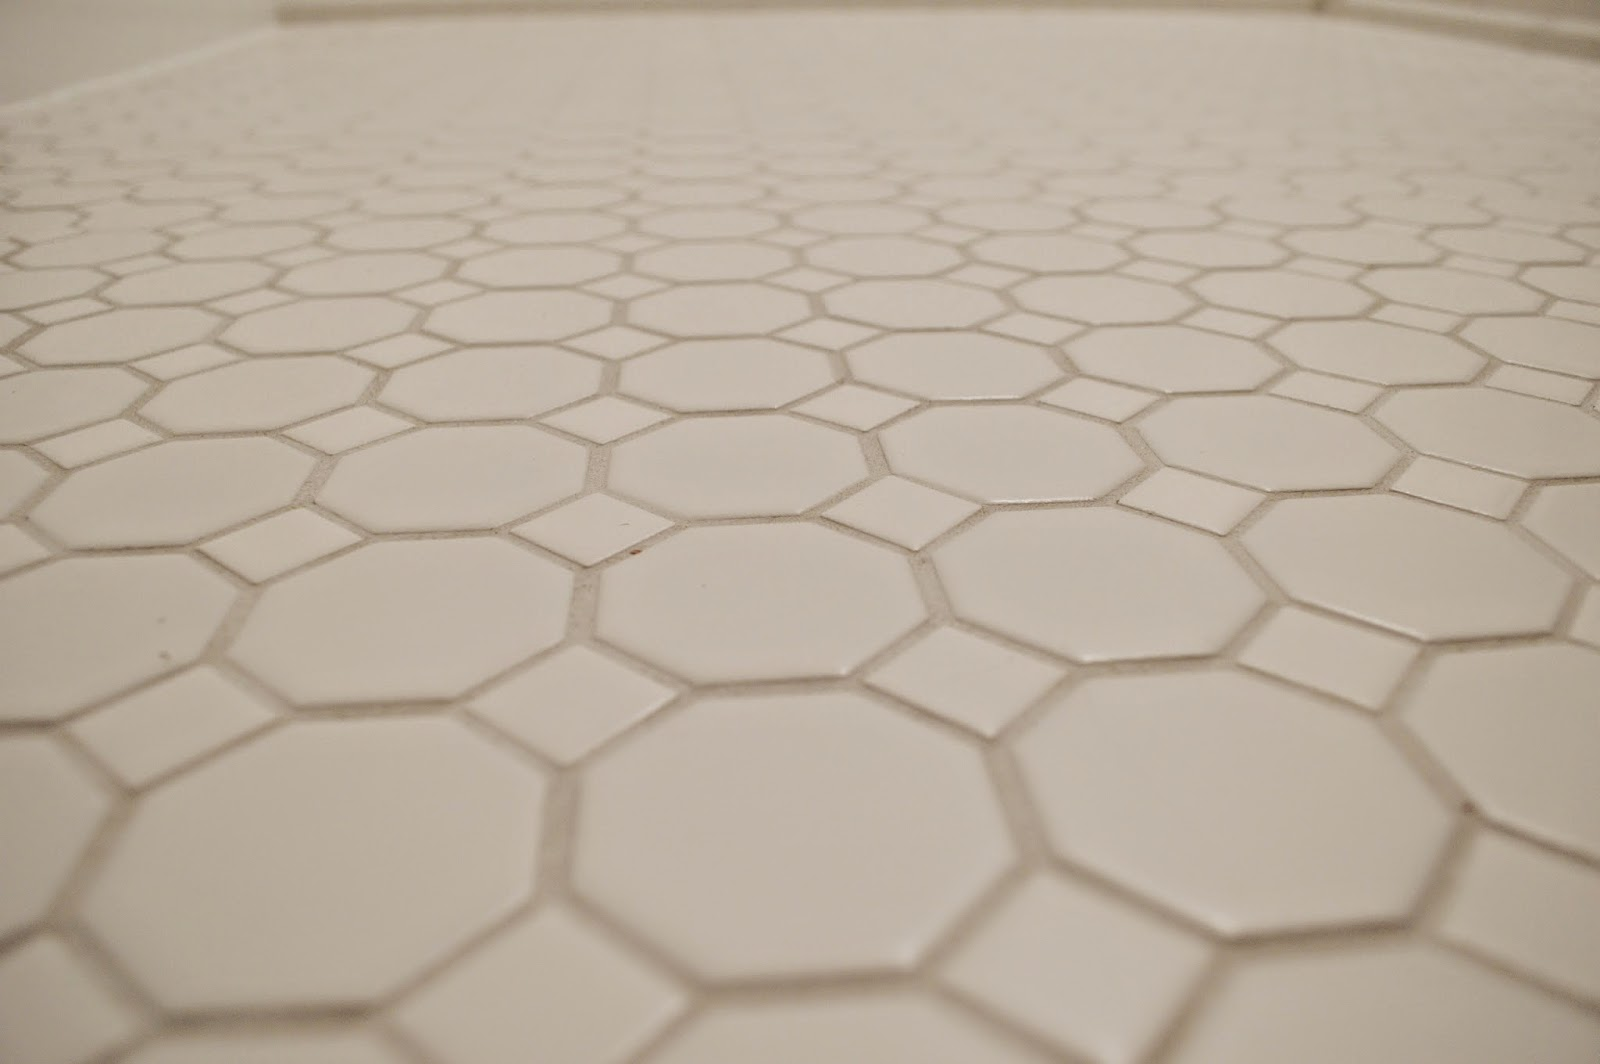 724 South House: My New Bathroom Obsession: The Floor Tile